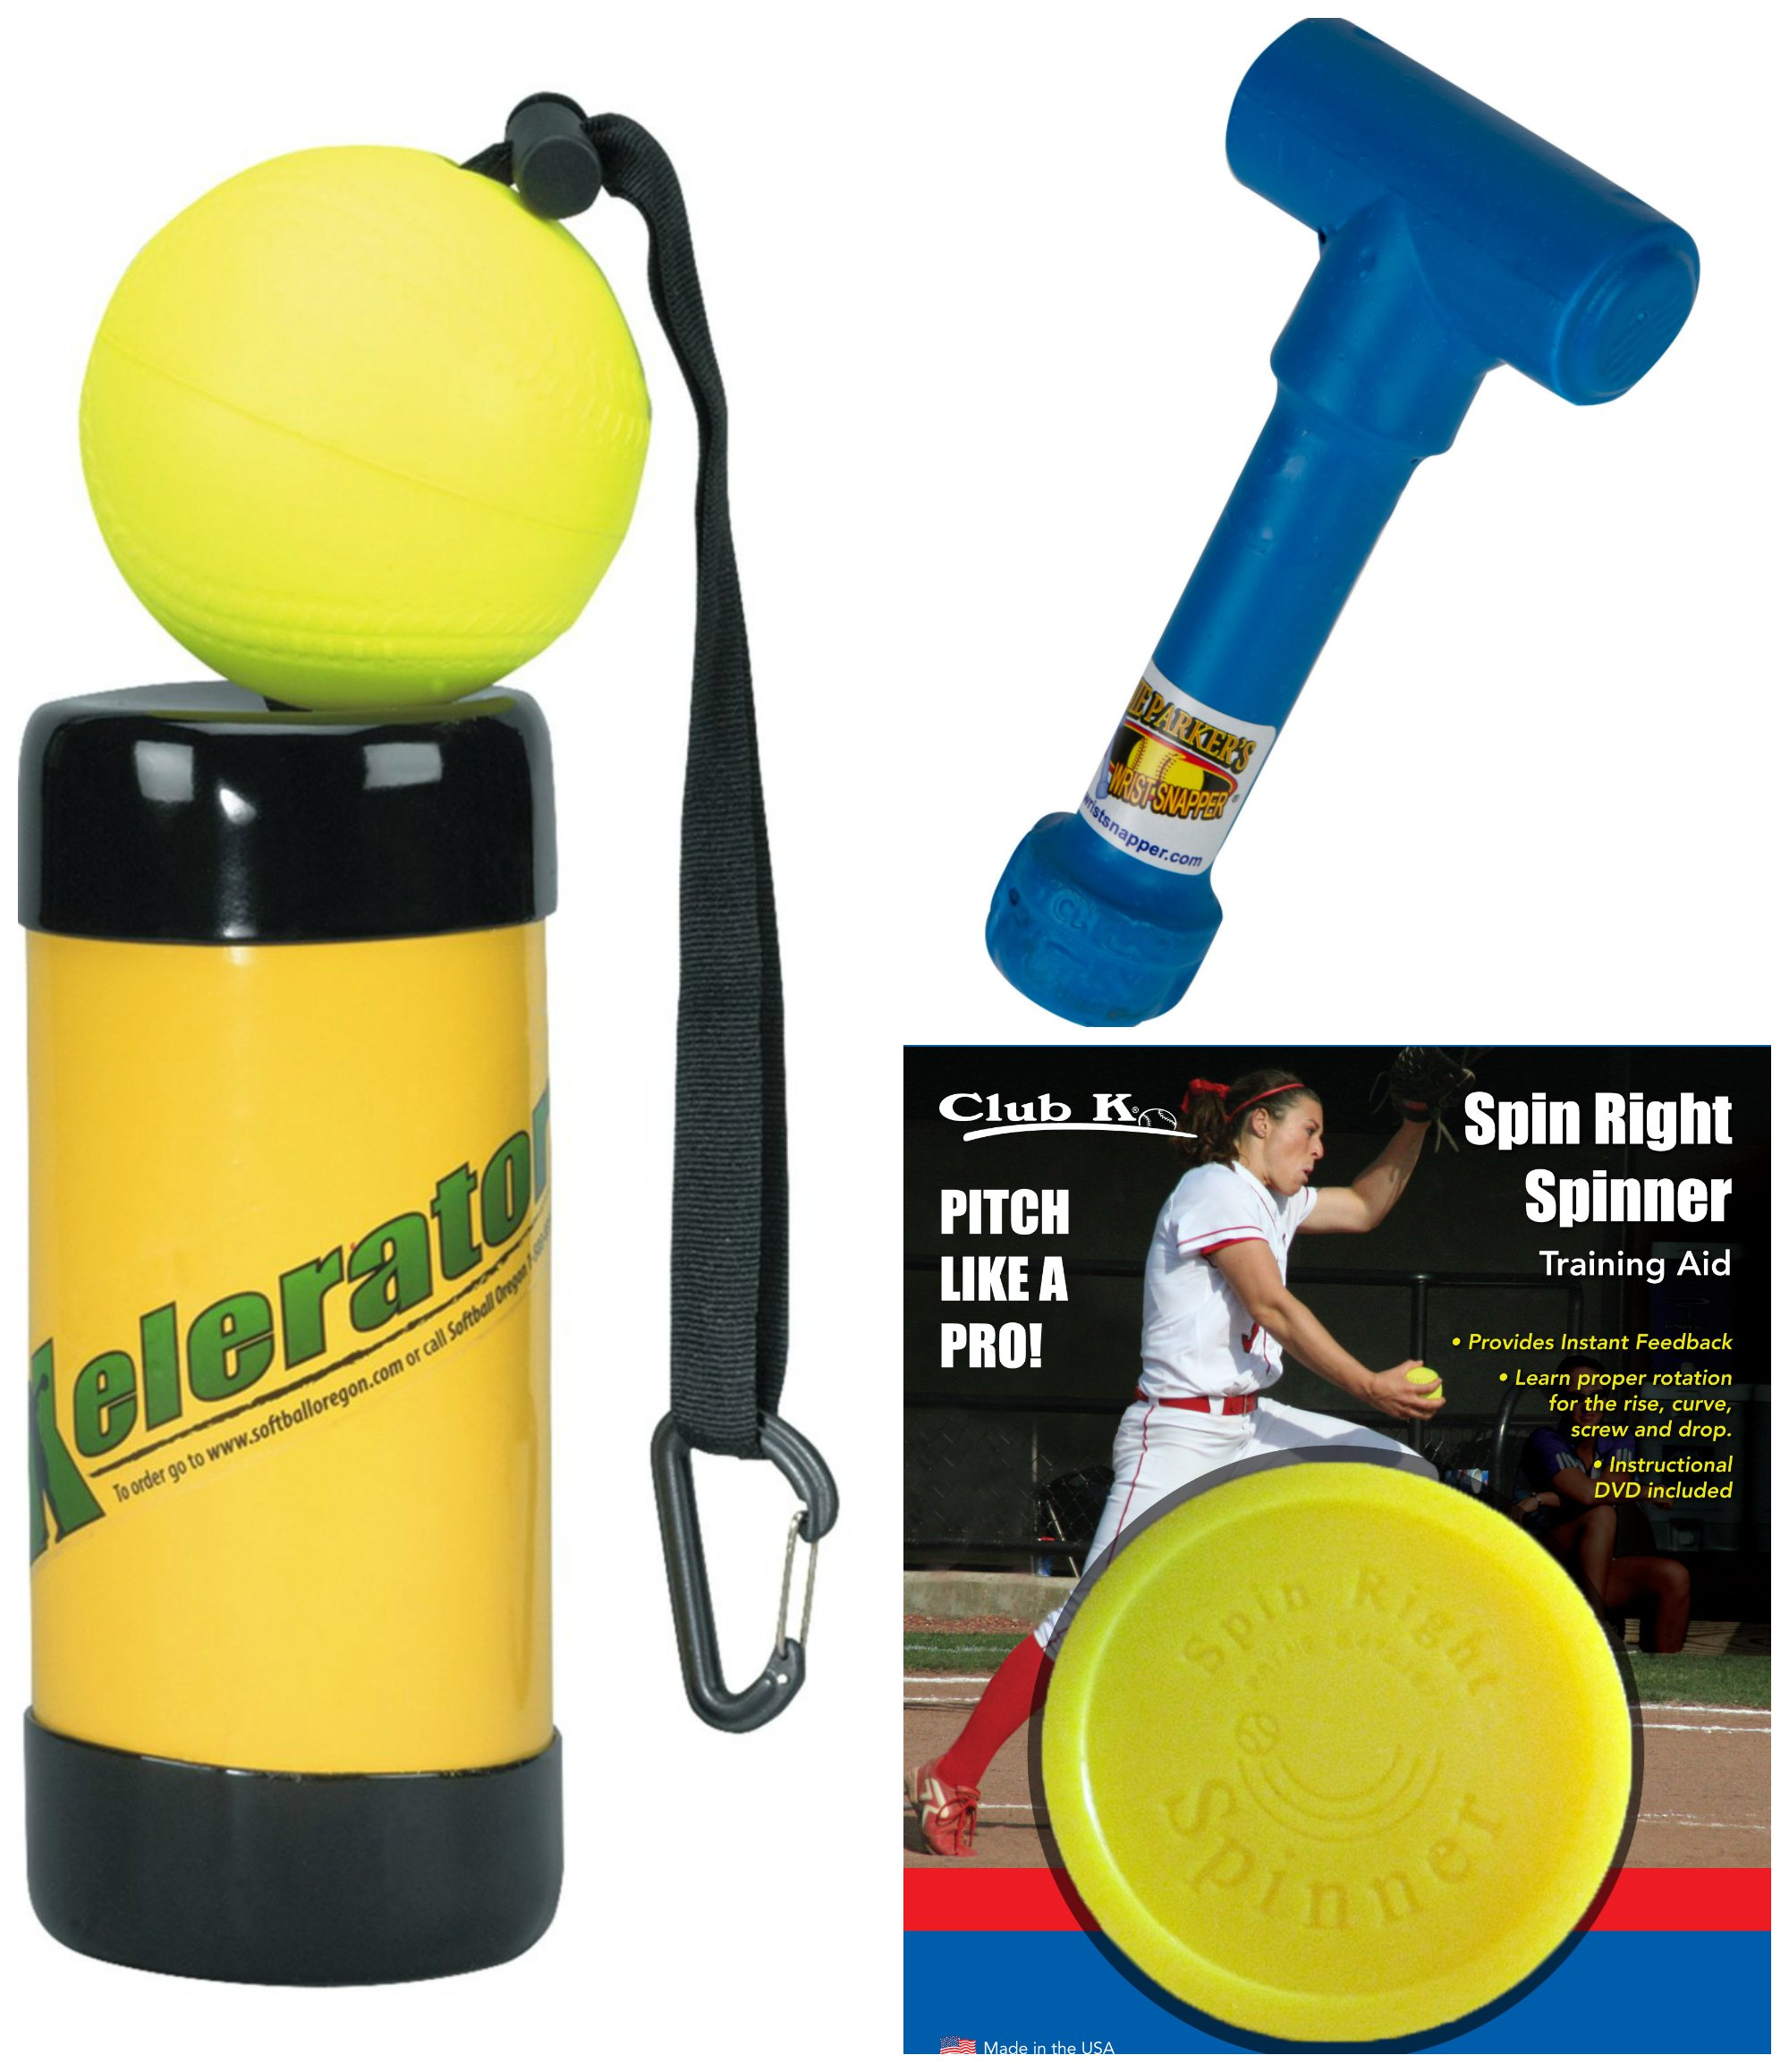 SPIN RIGHT SPINNER + Ernie Parker's WRIST SNAPPER + XELERATOR Fastpitch Softball Pitching Training Aids Equipment Gear by Buckeye Nation Sales